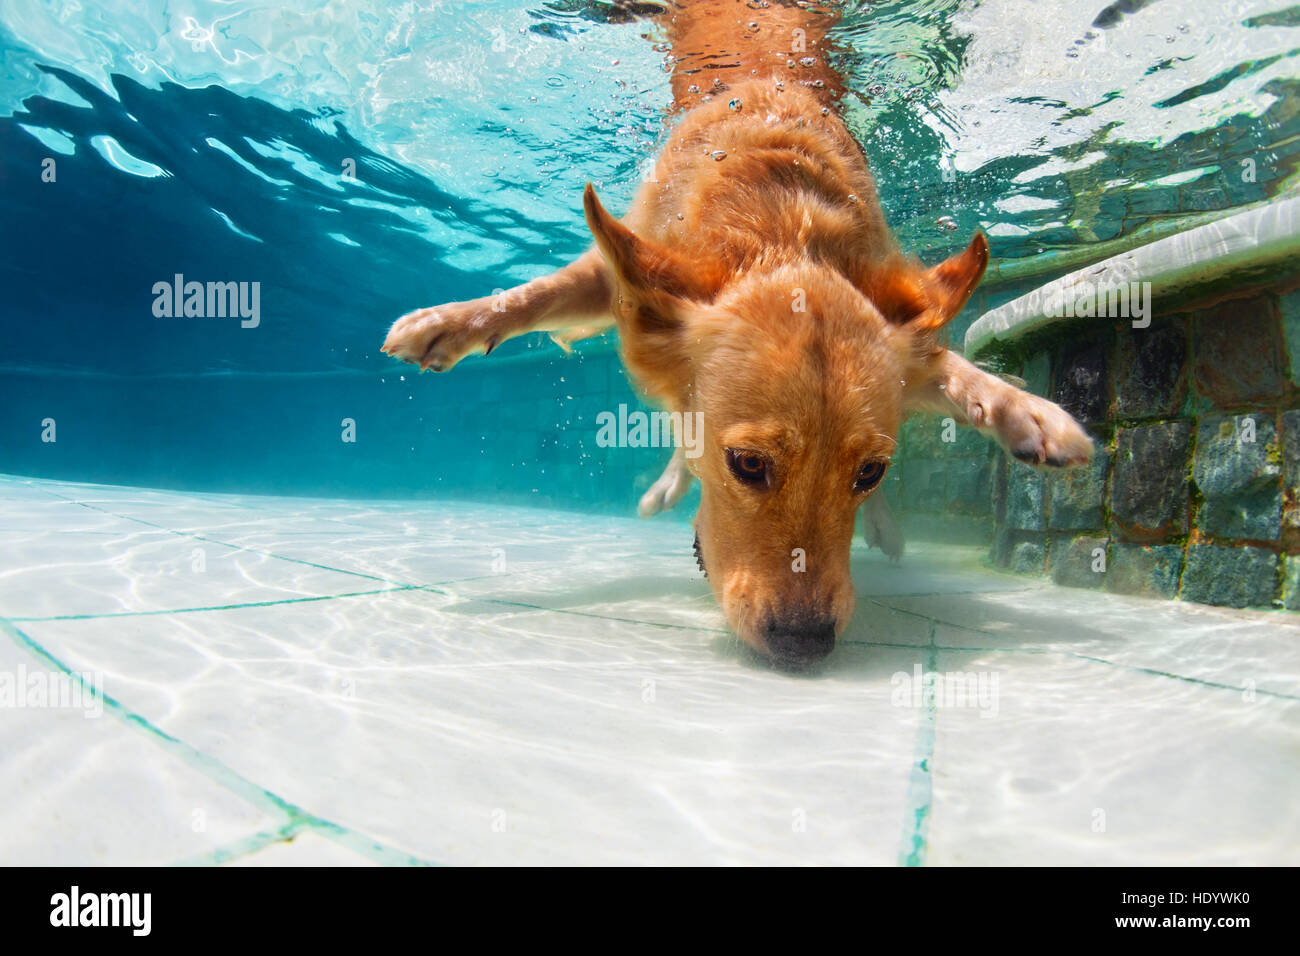 Underwater Funny Photo Of Golden Labrador Retriever Dog In Swimming Stock Photo Royalty Free